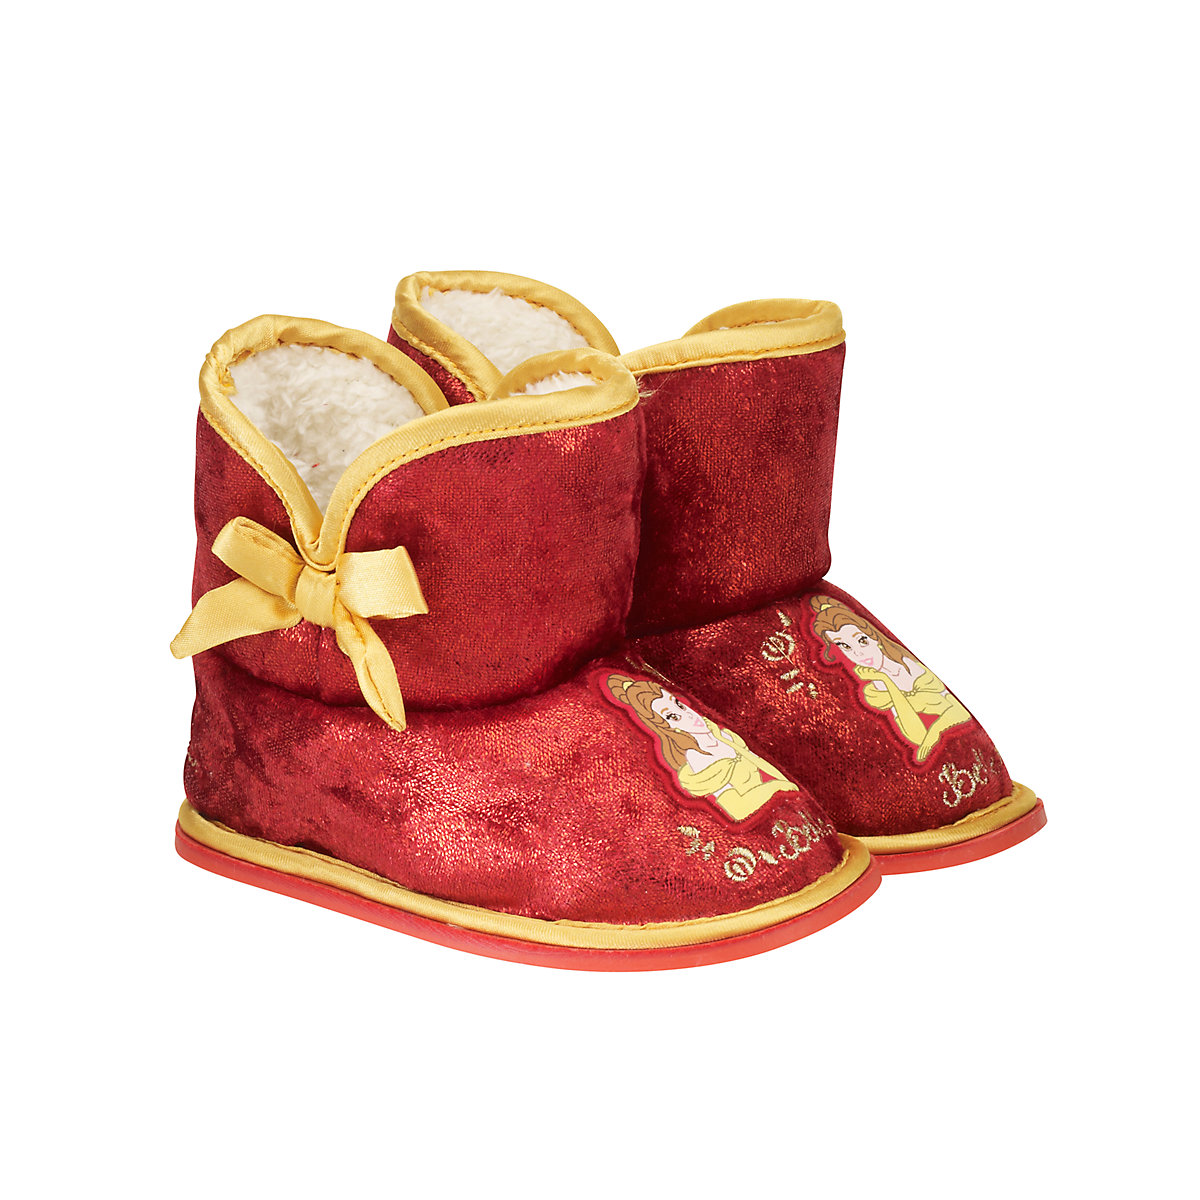 Disney Princess Belle Bootees - Disney Gifts